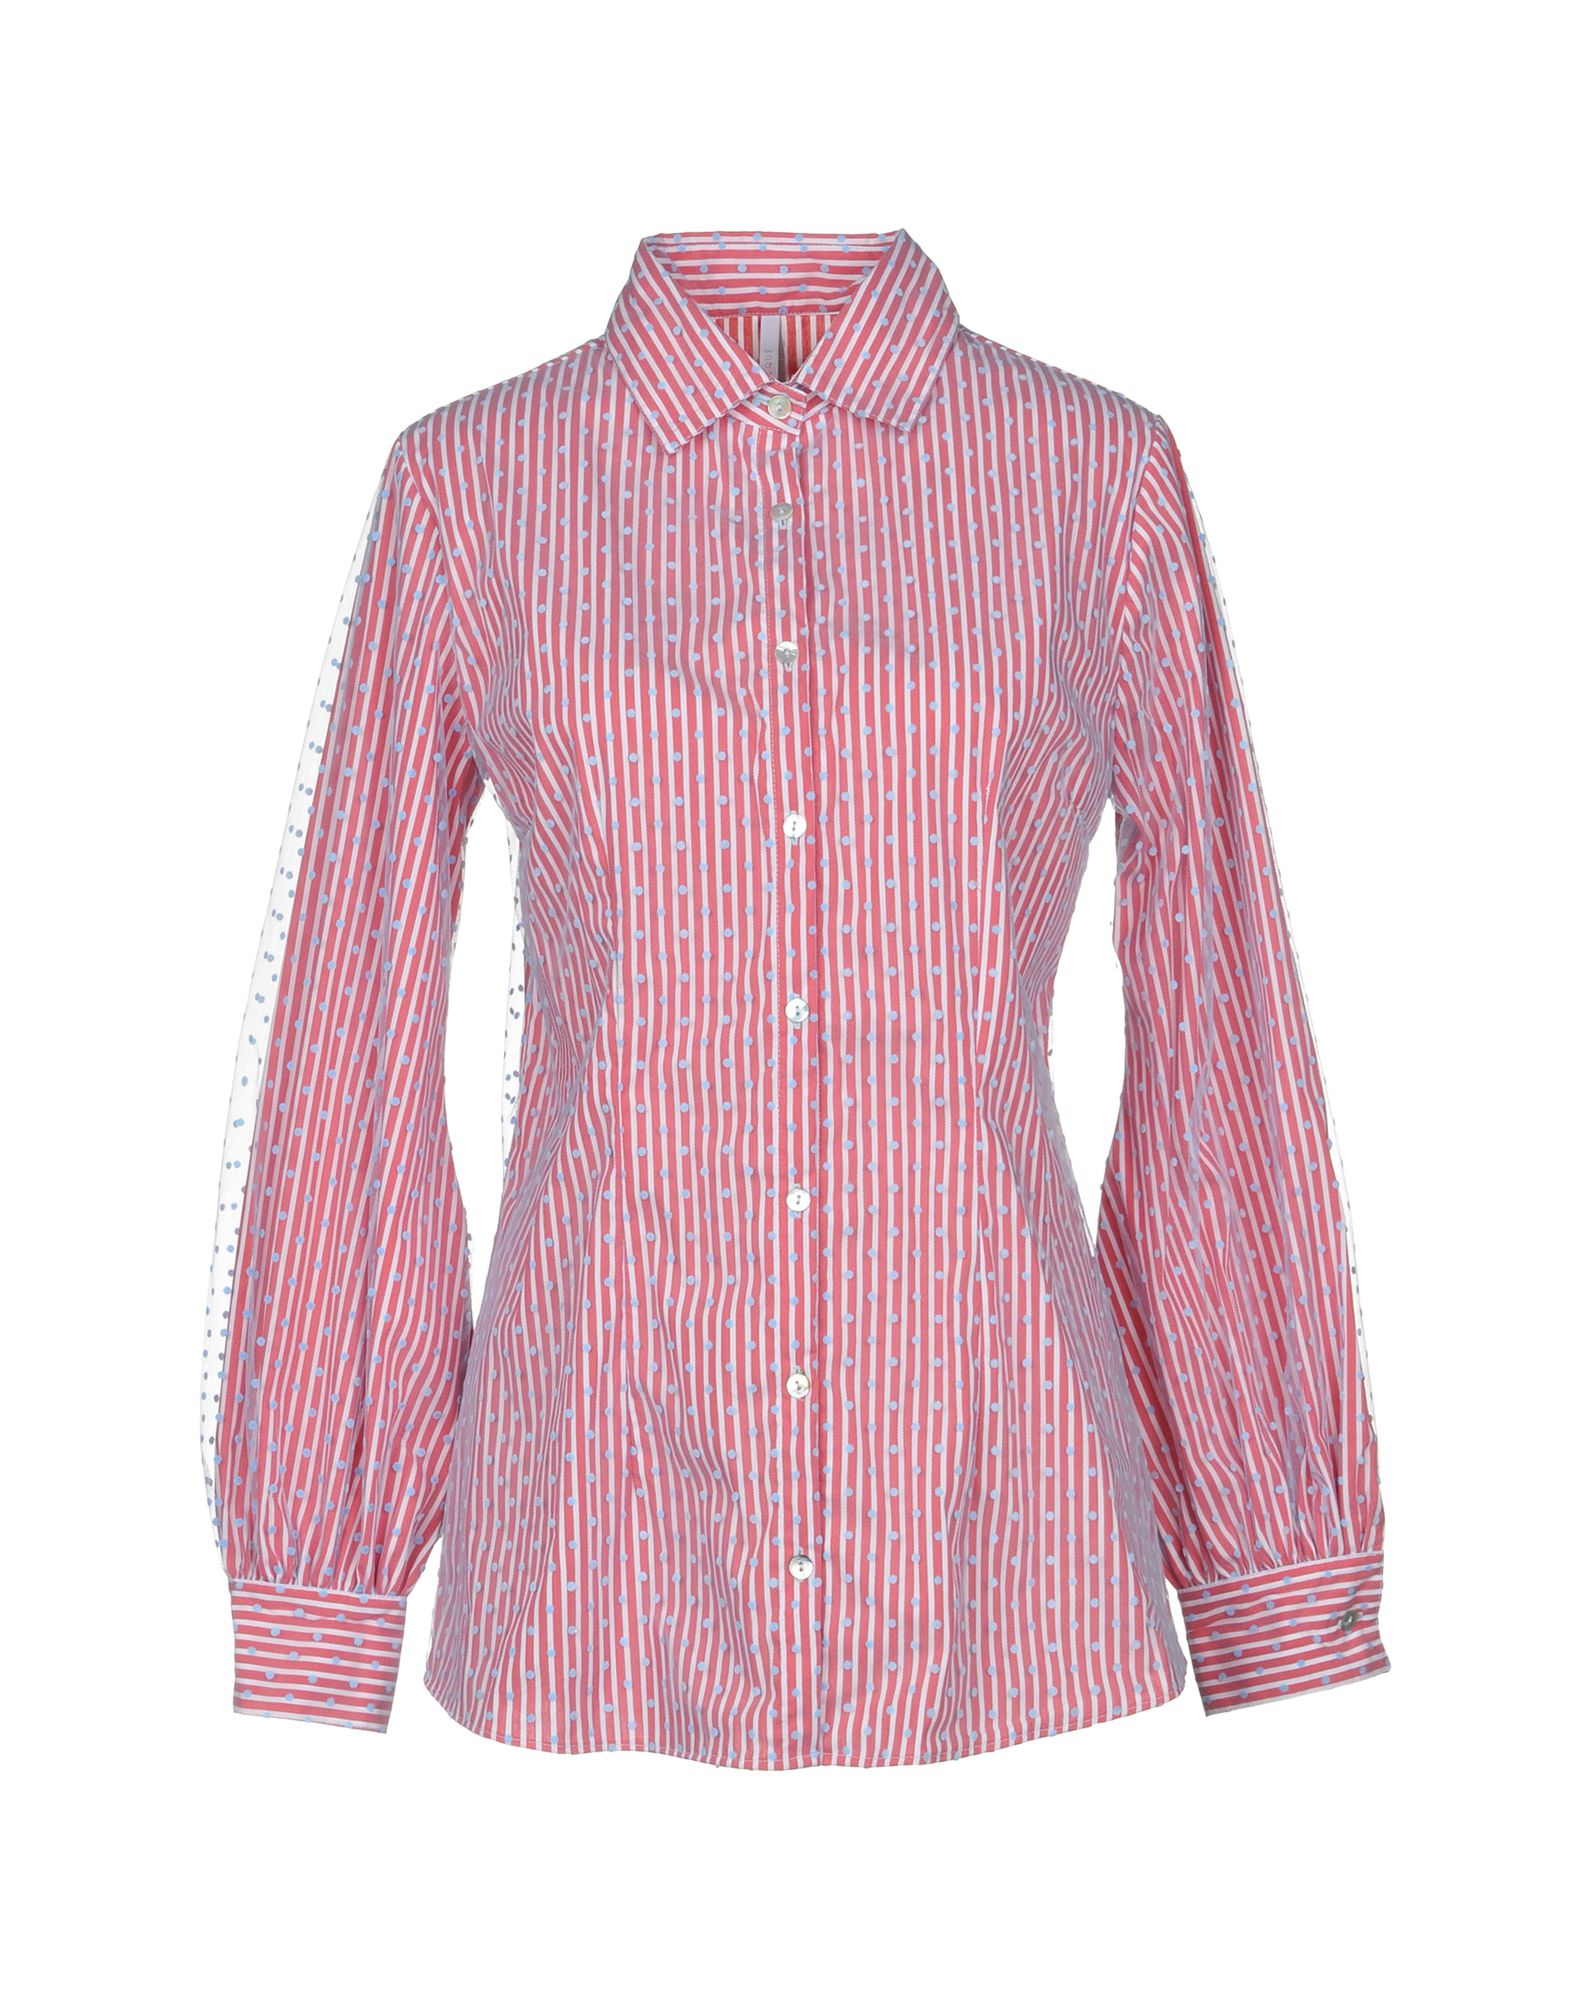 ALCOOLIQUE Striped Shirt in Red